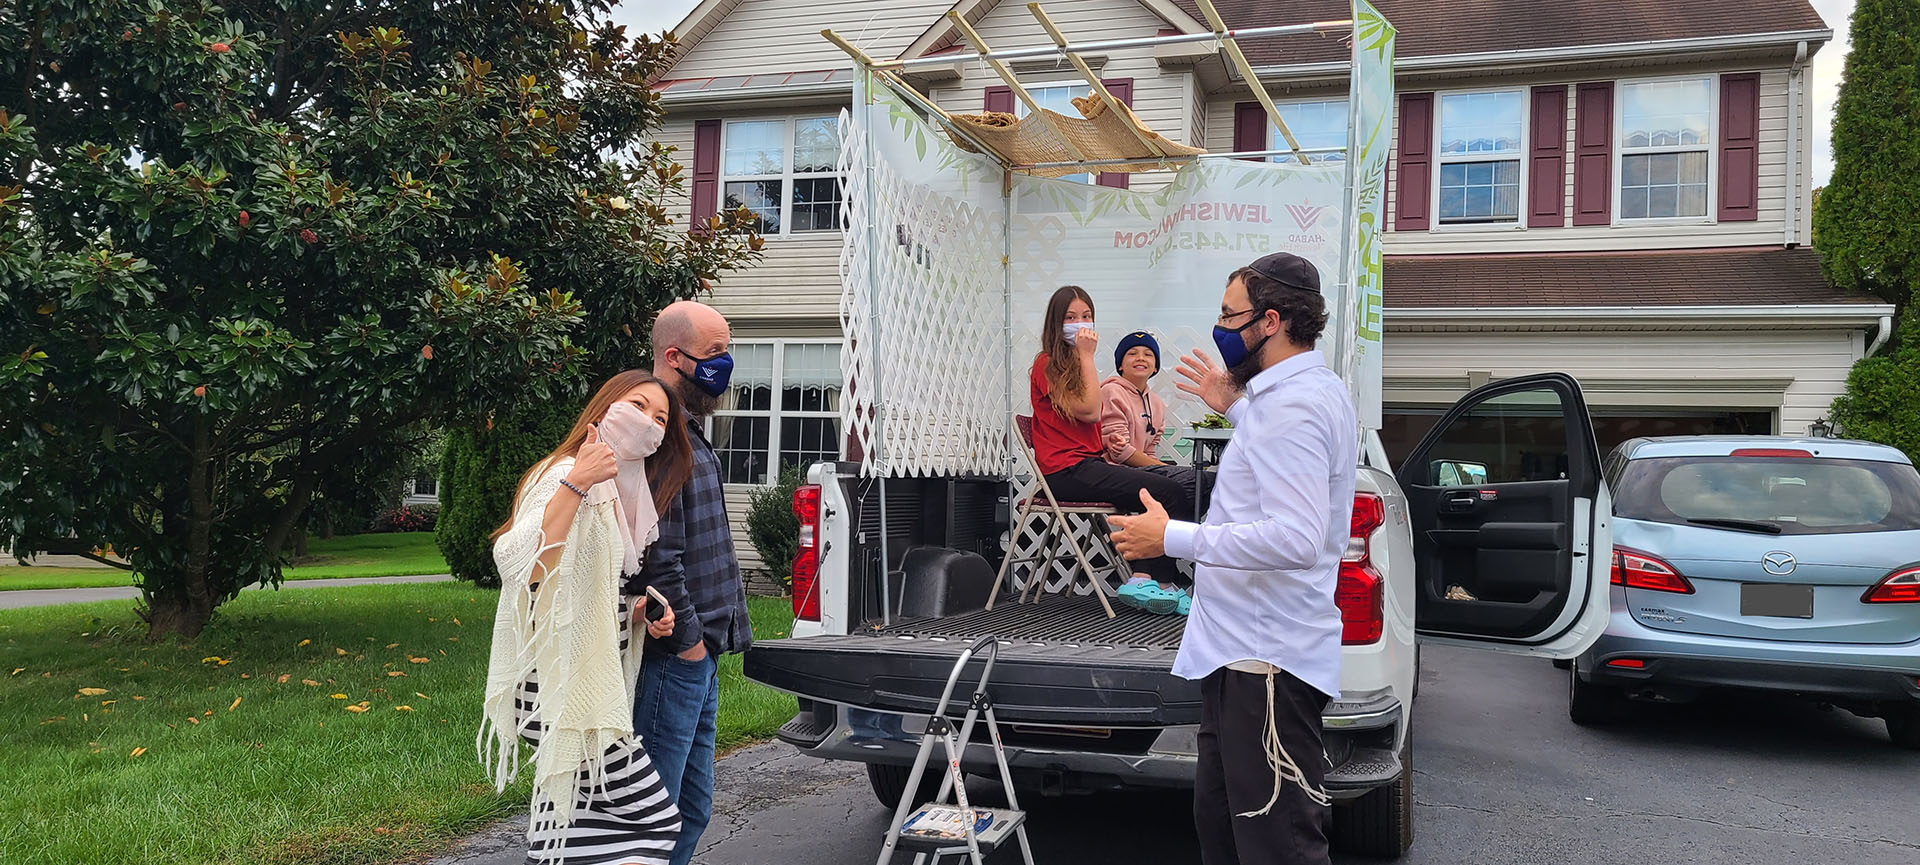 Jewish community celebrates holiday with mobile sukkah